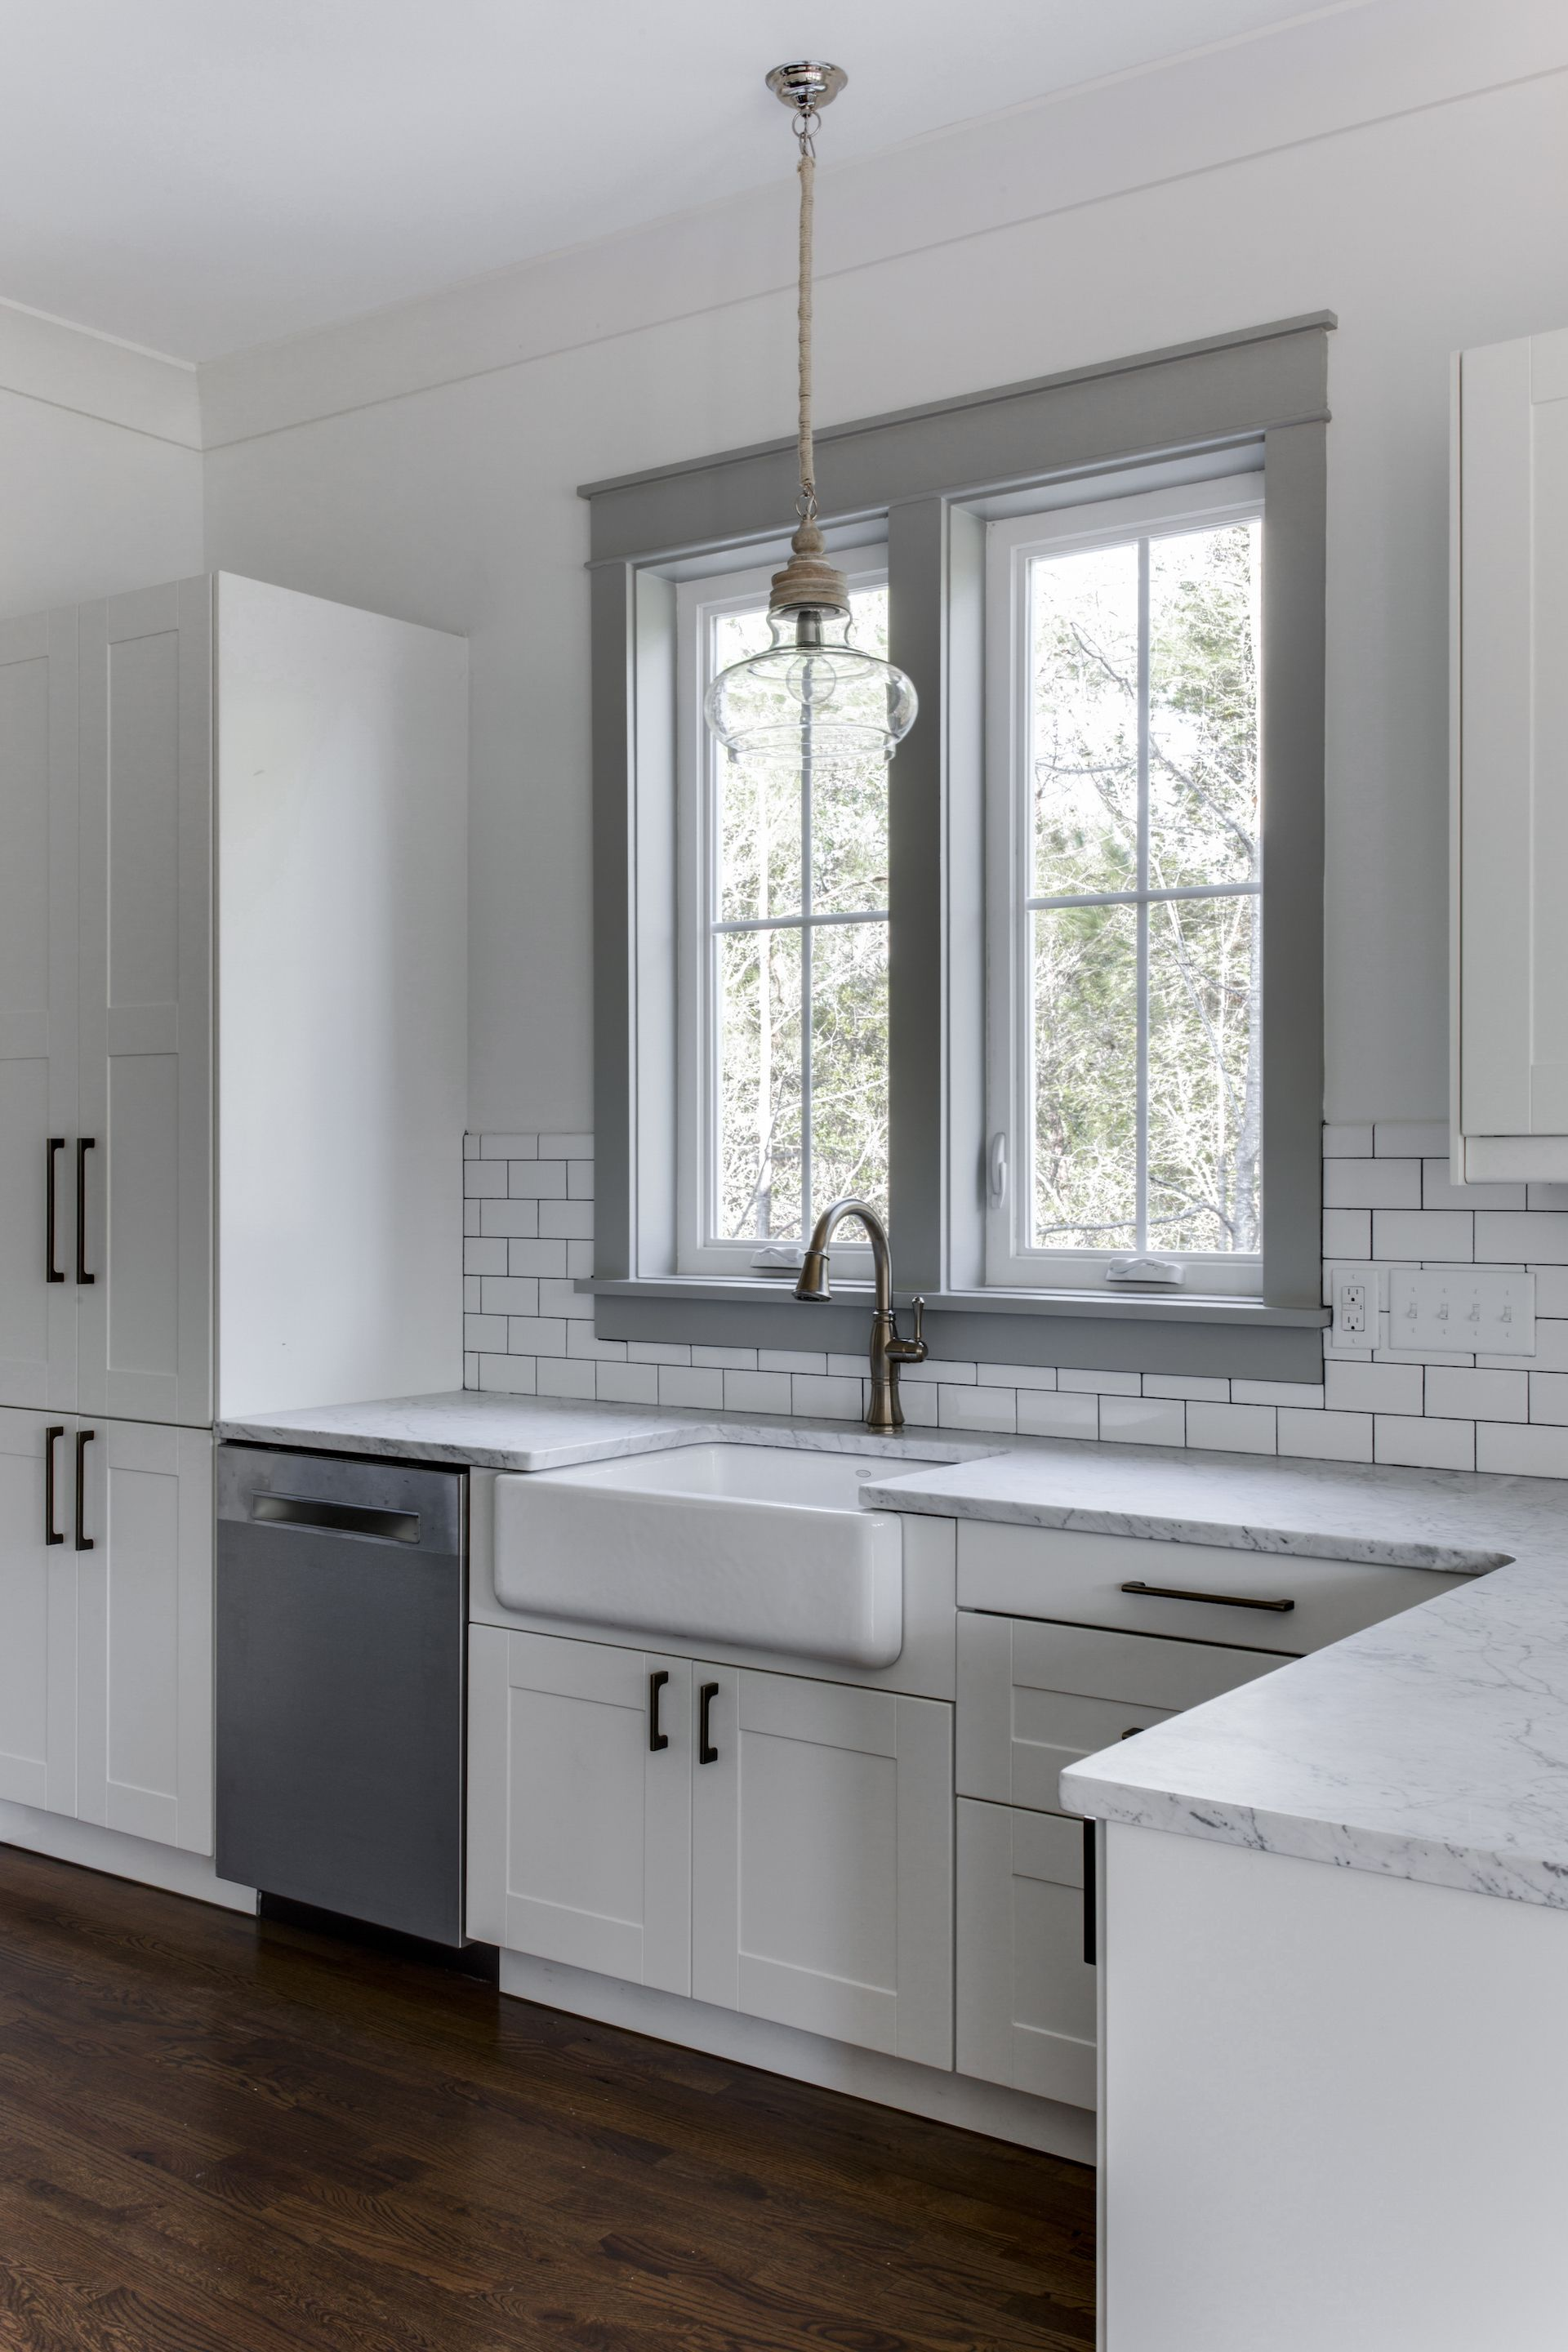 Love the white farmhouse sink and gray painted